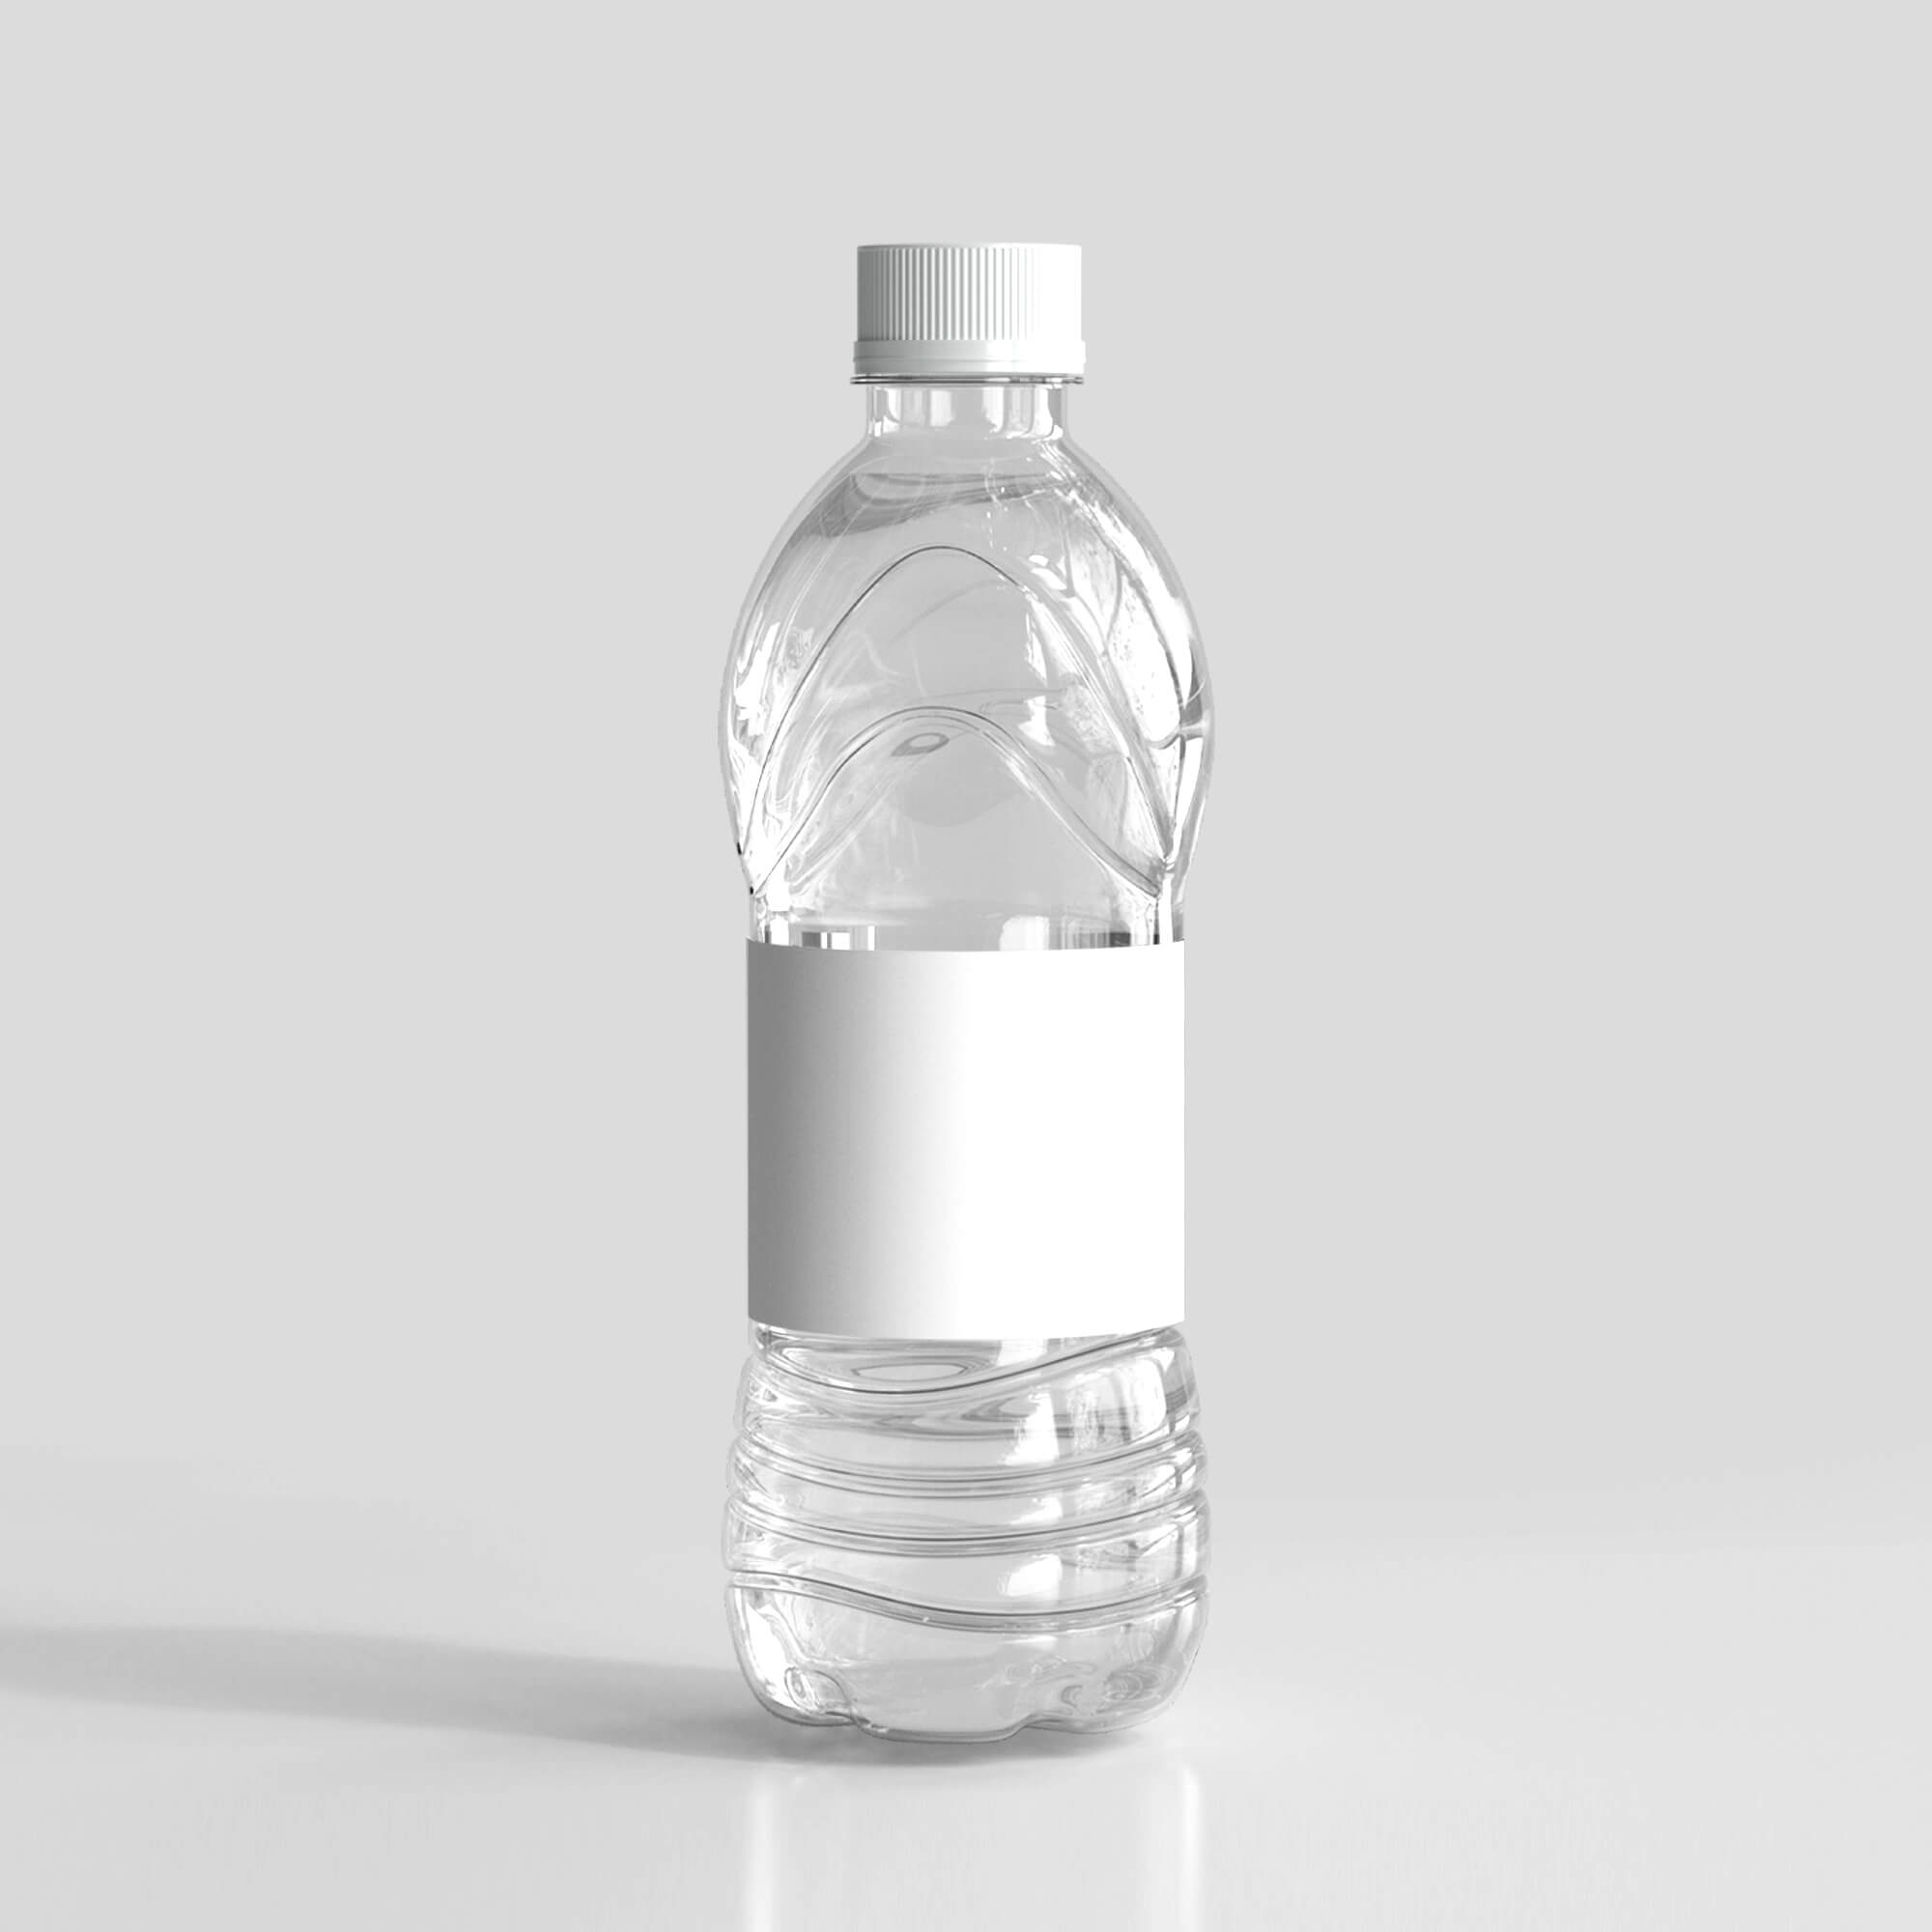 Blank Free Drink Bottle Mockup PSD Template